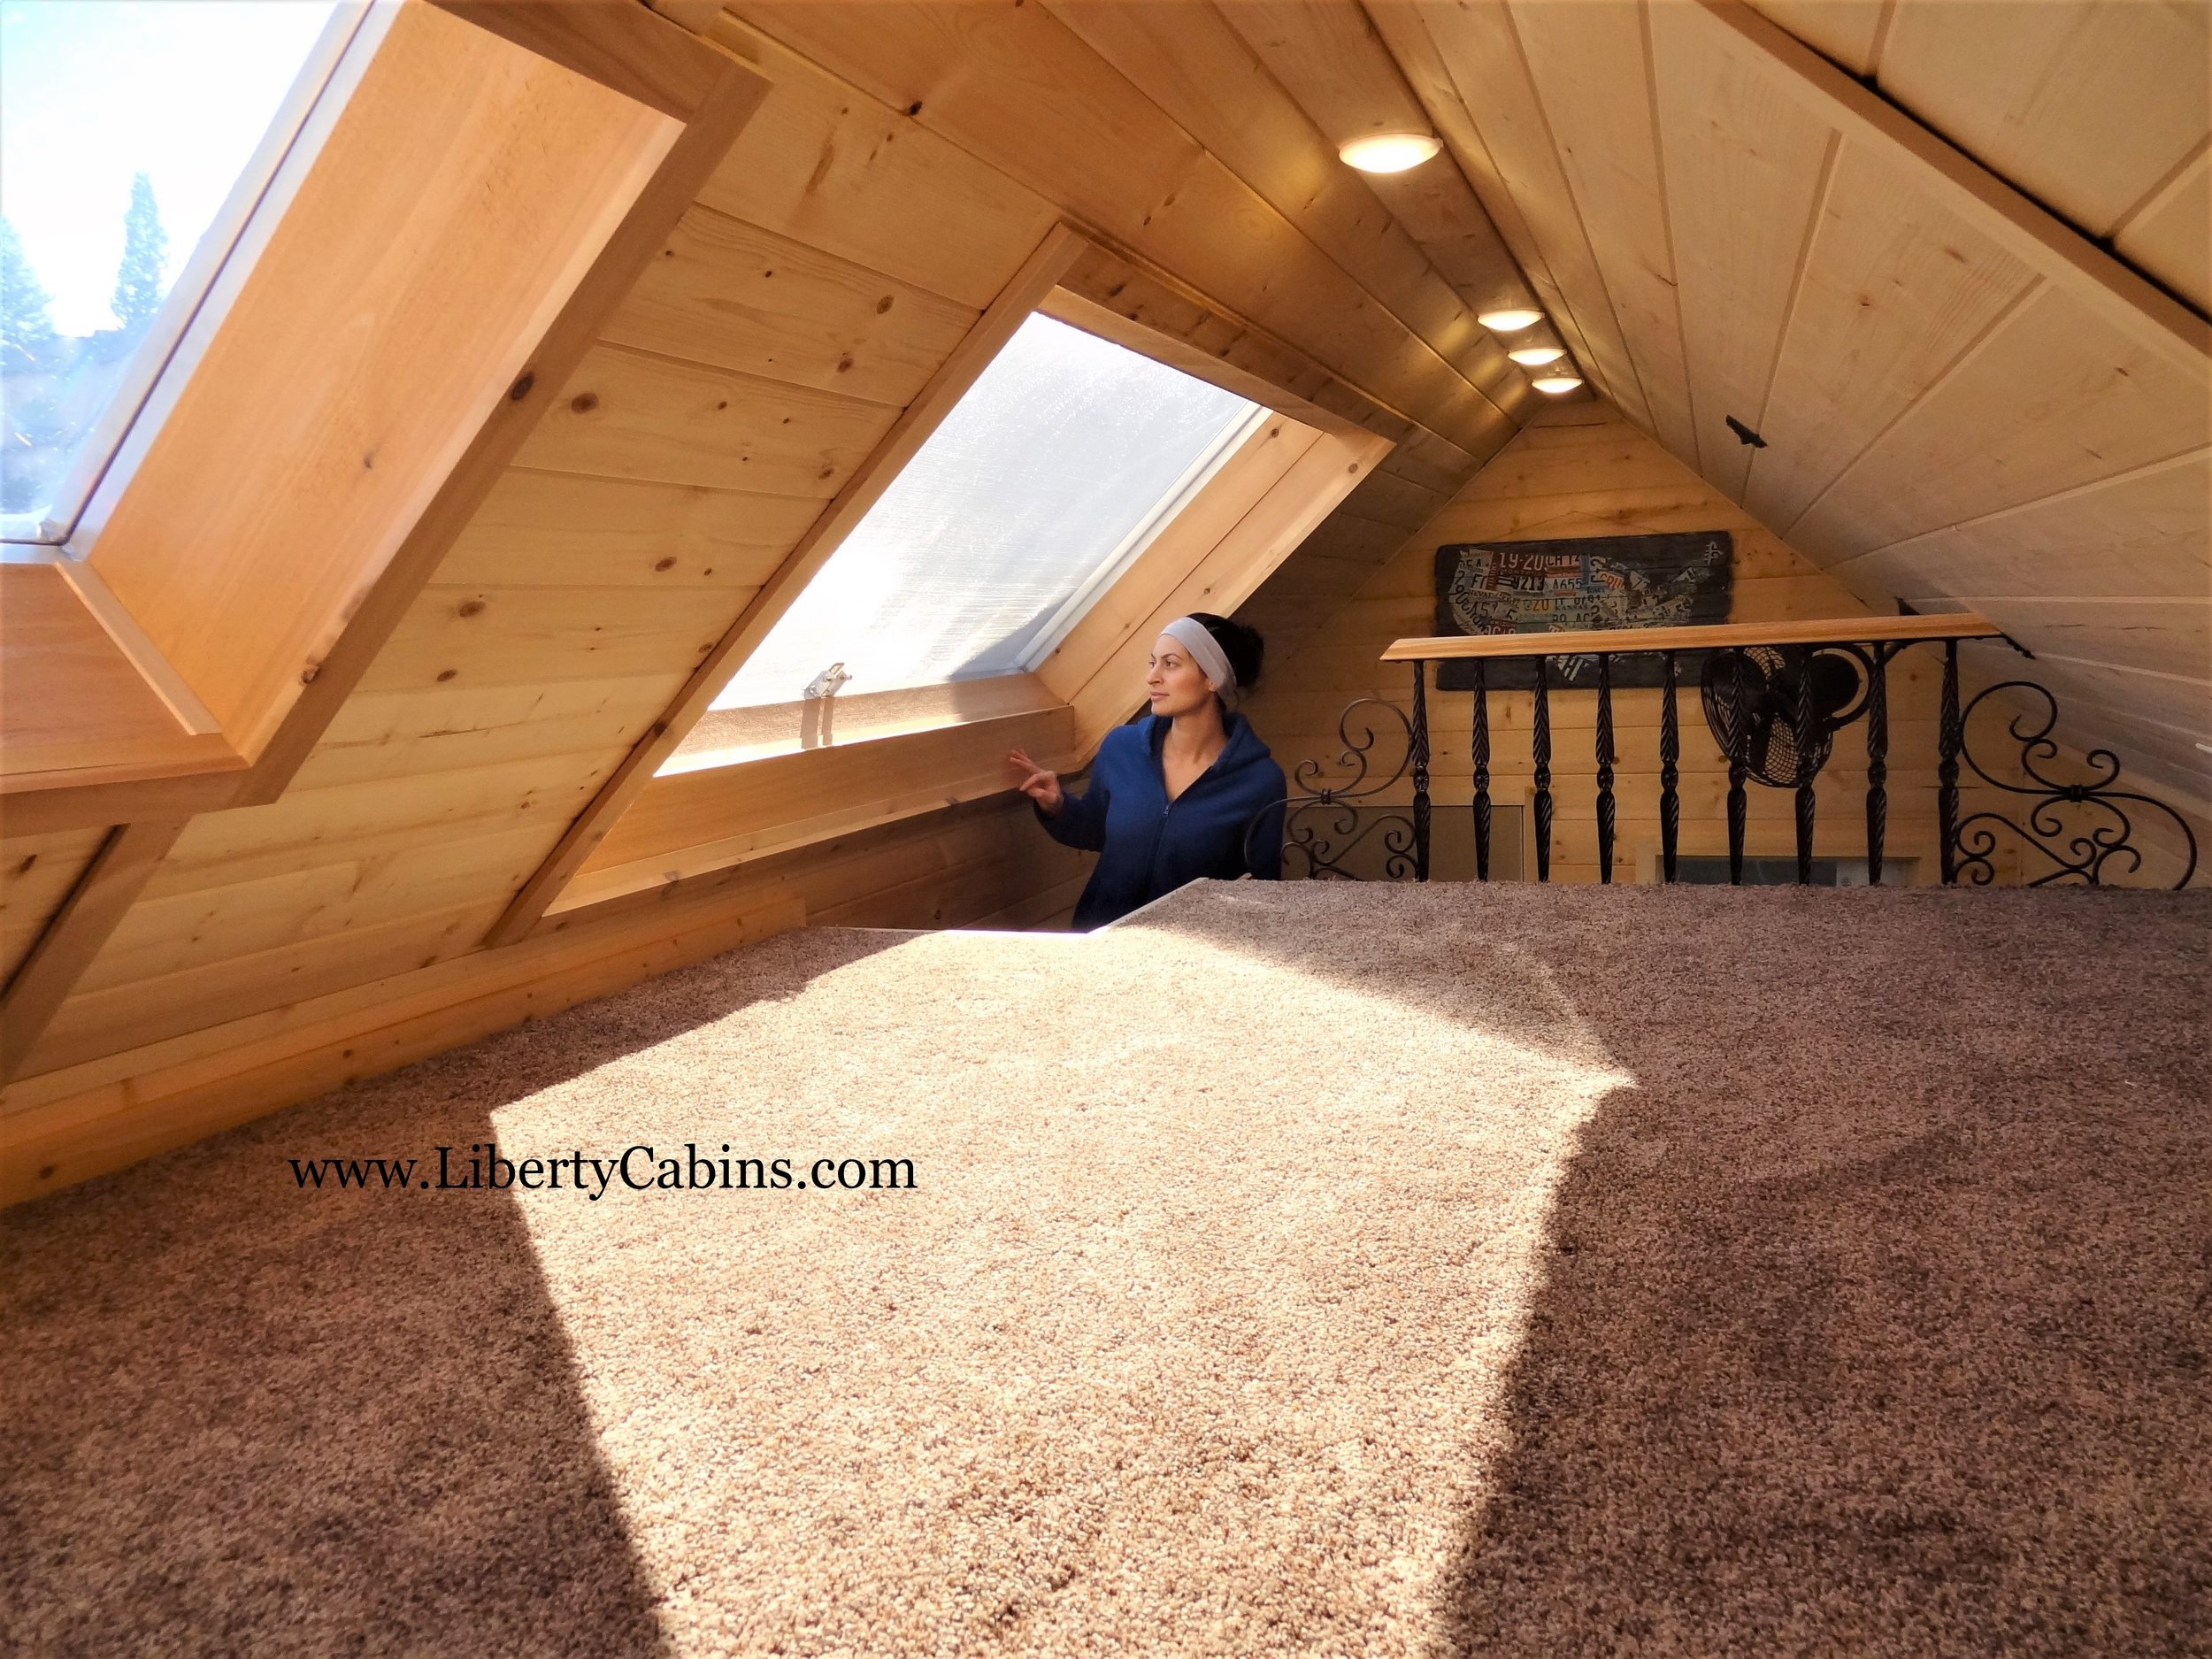 Liberation Cabins upstairs l Dream Loft l Tiny Life Supply.jpg